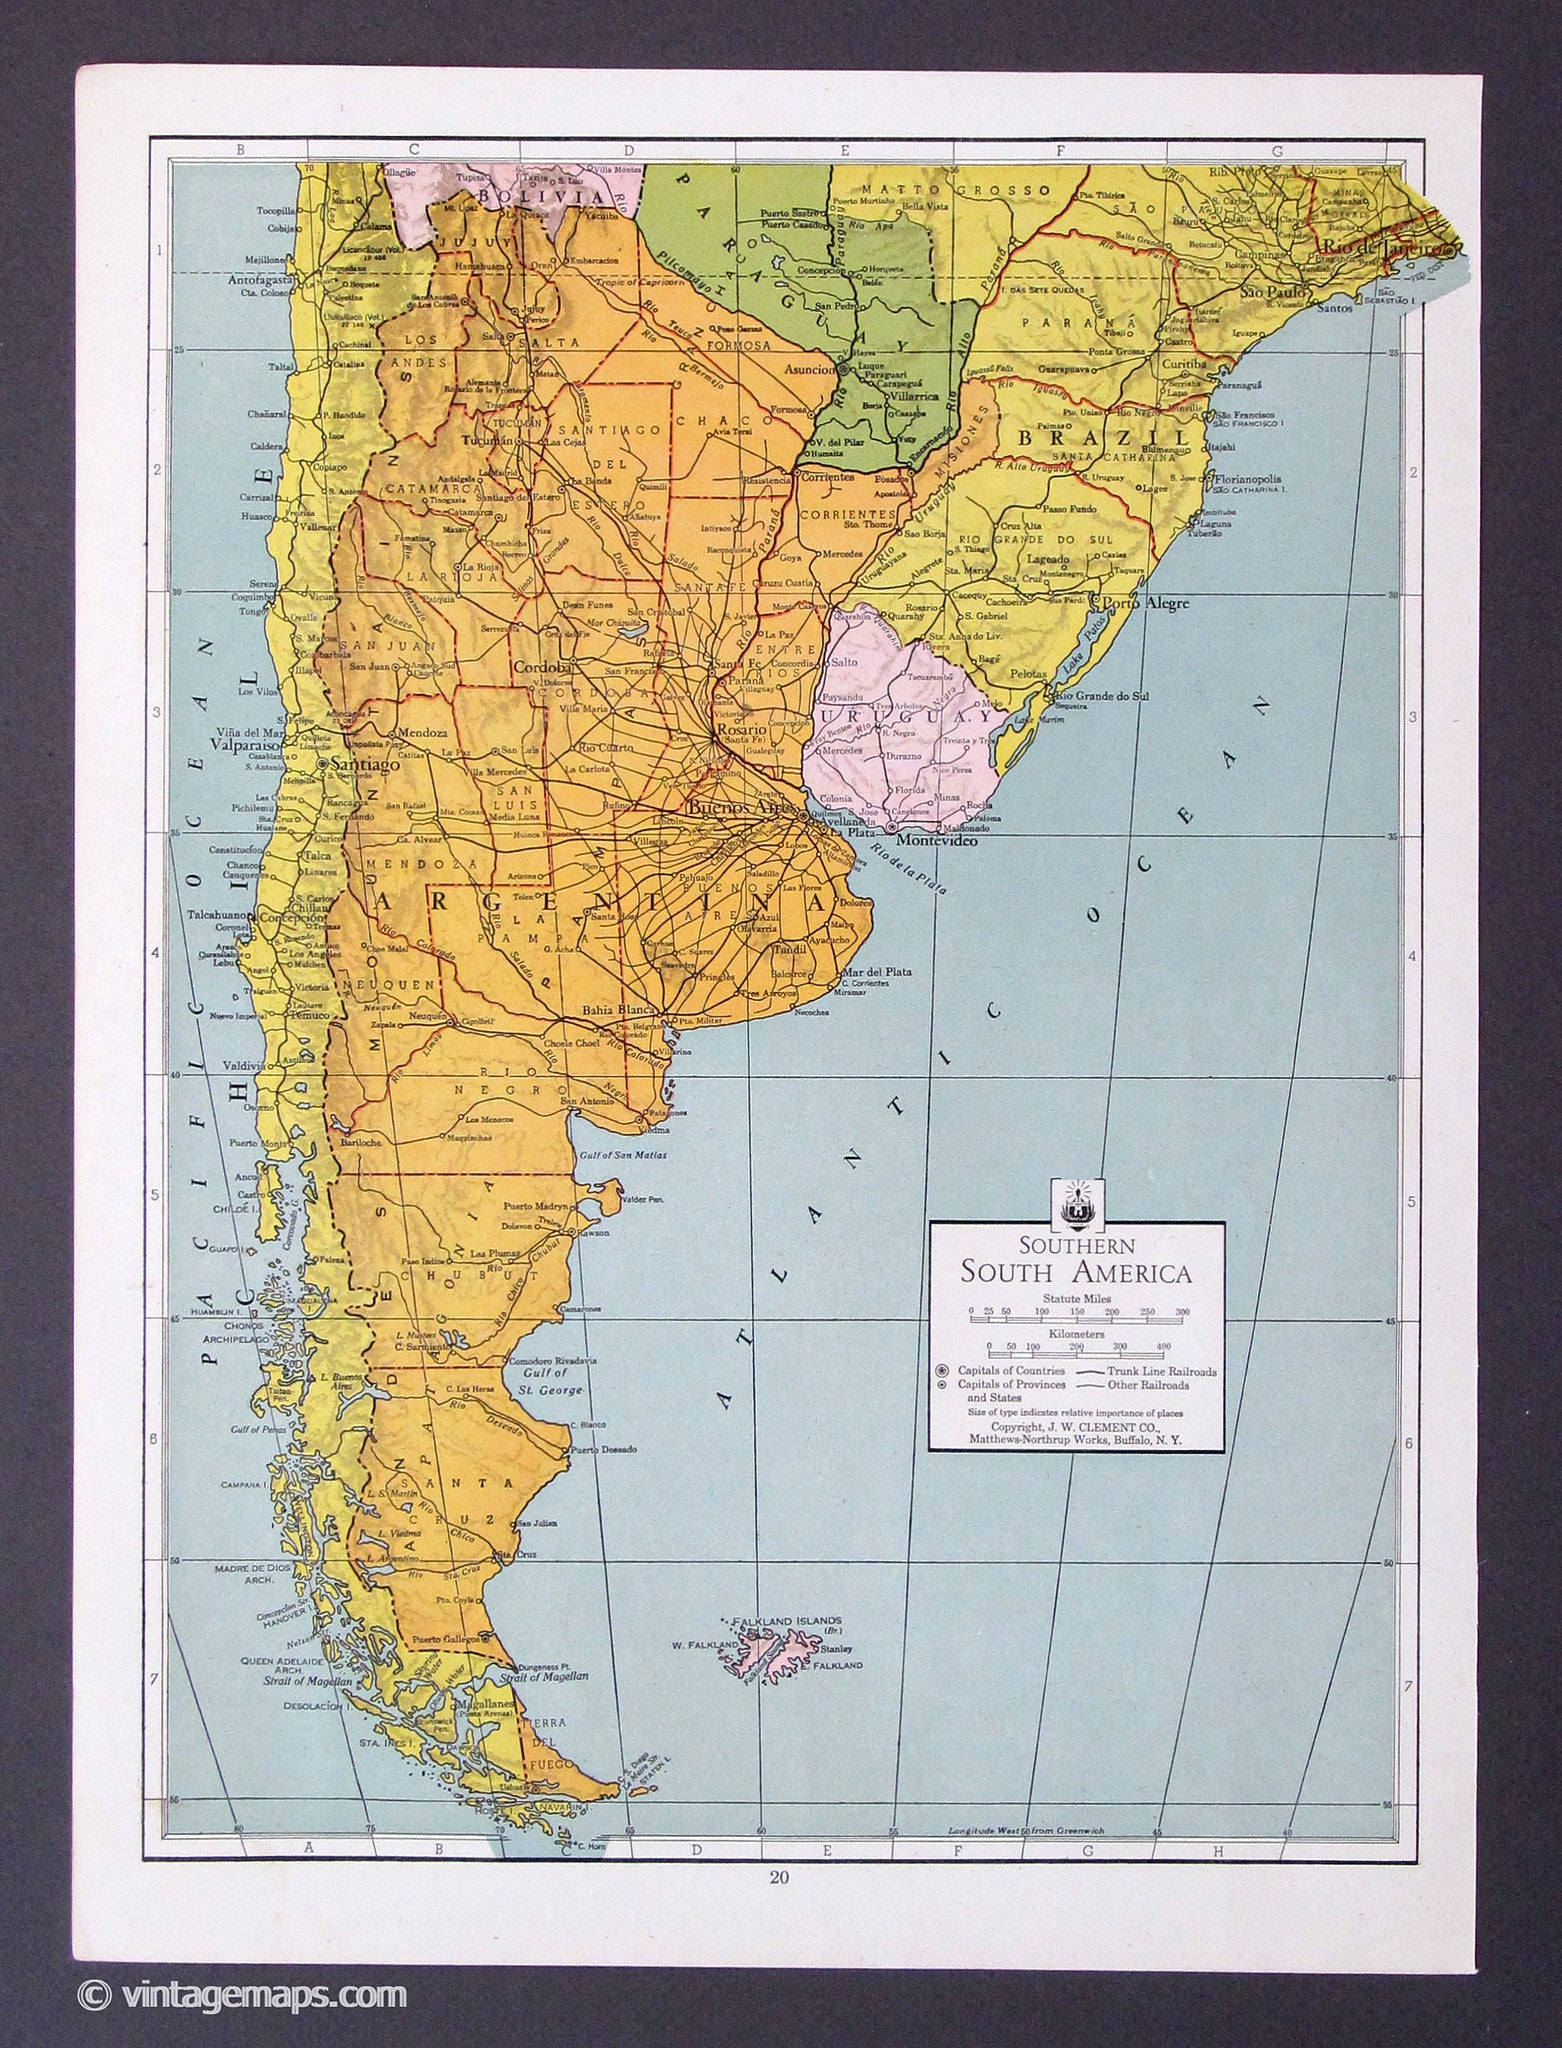 Countries AD Vintage Maps - Argentina map to print